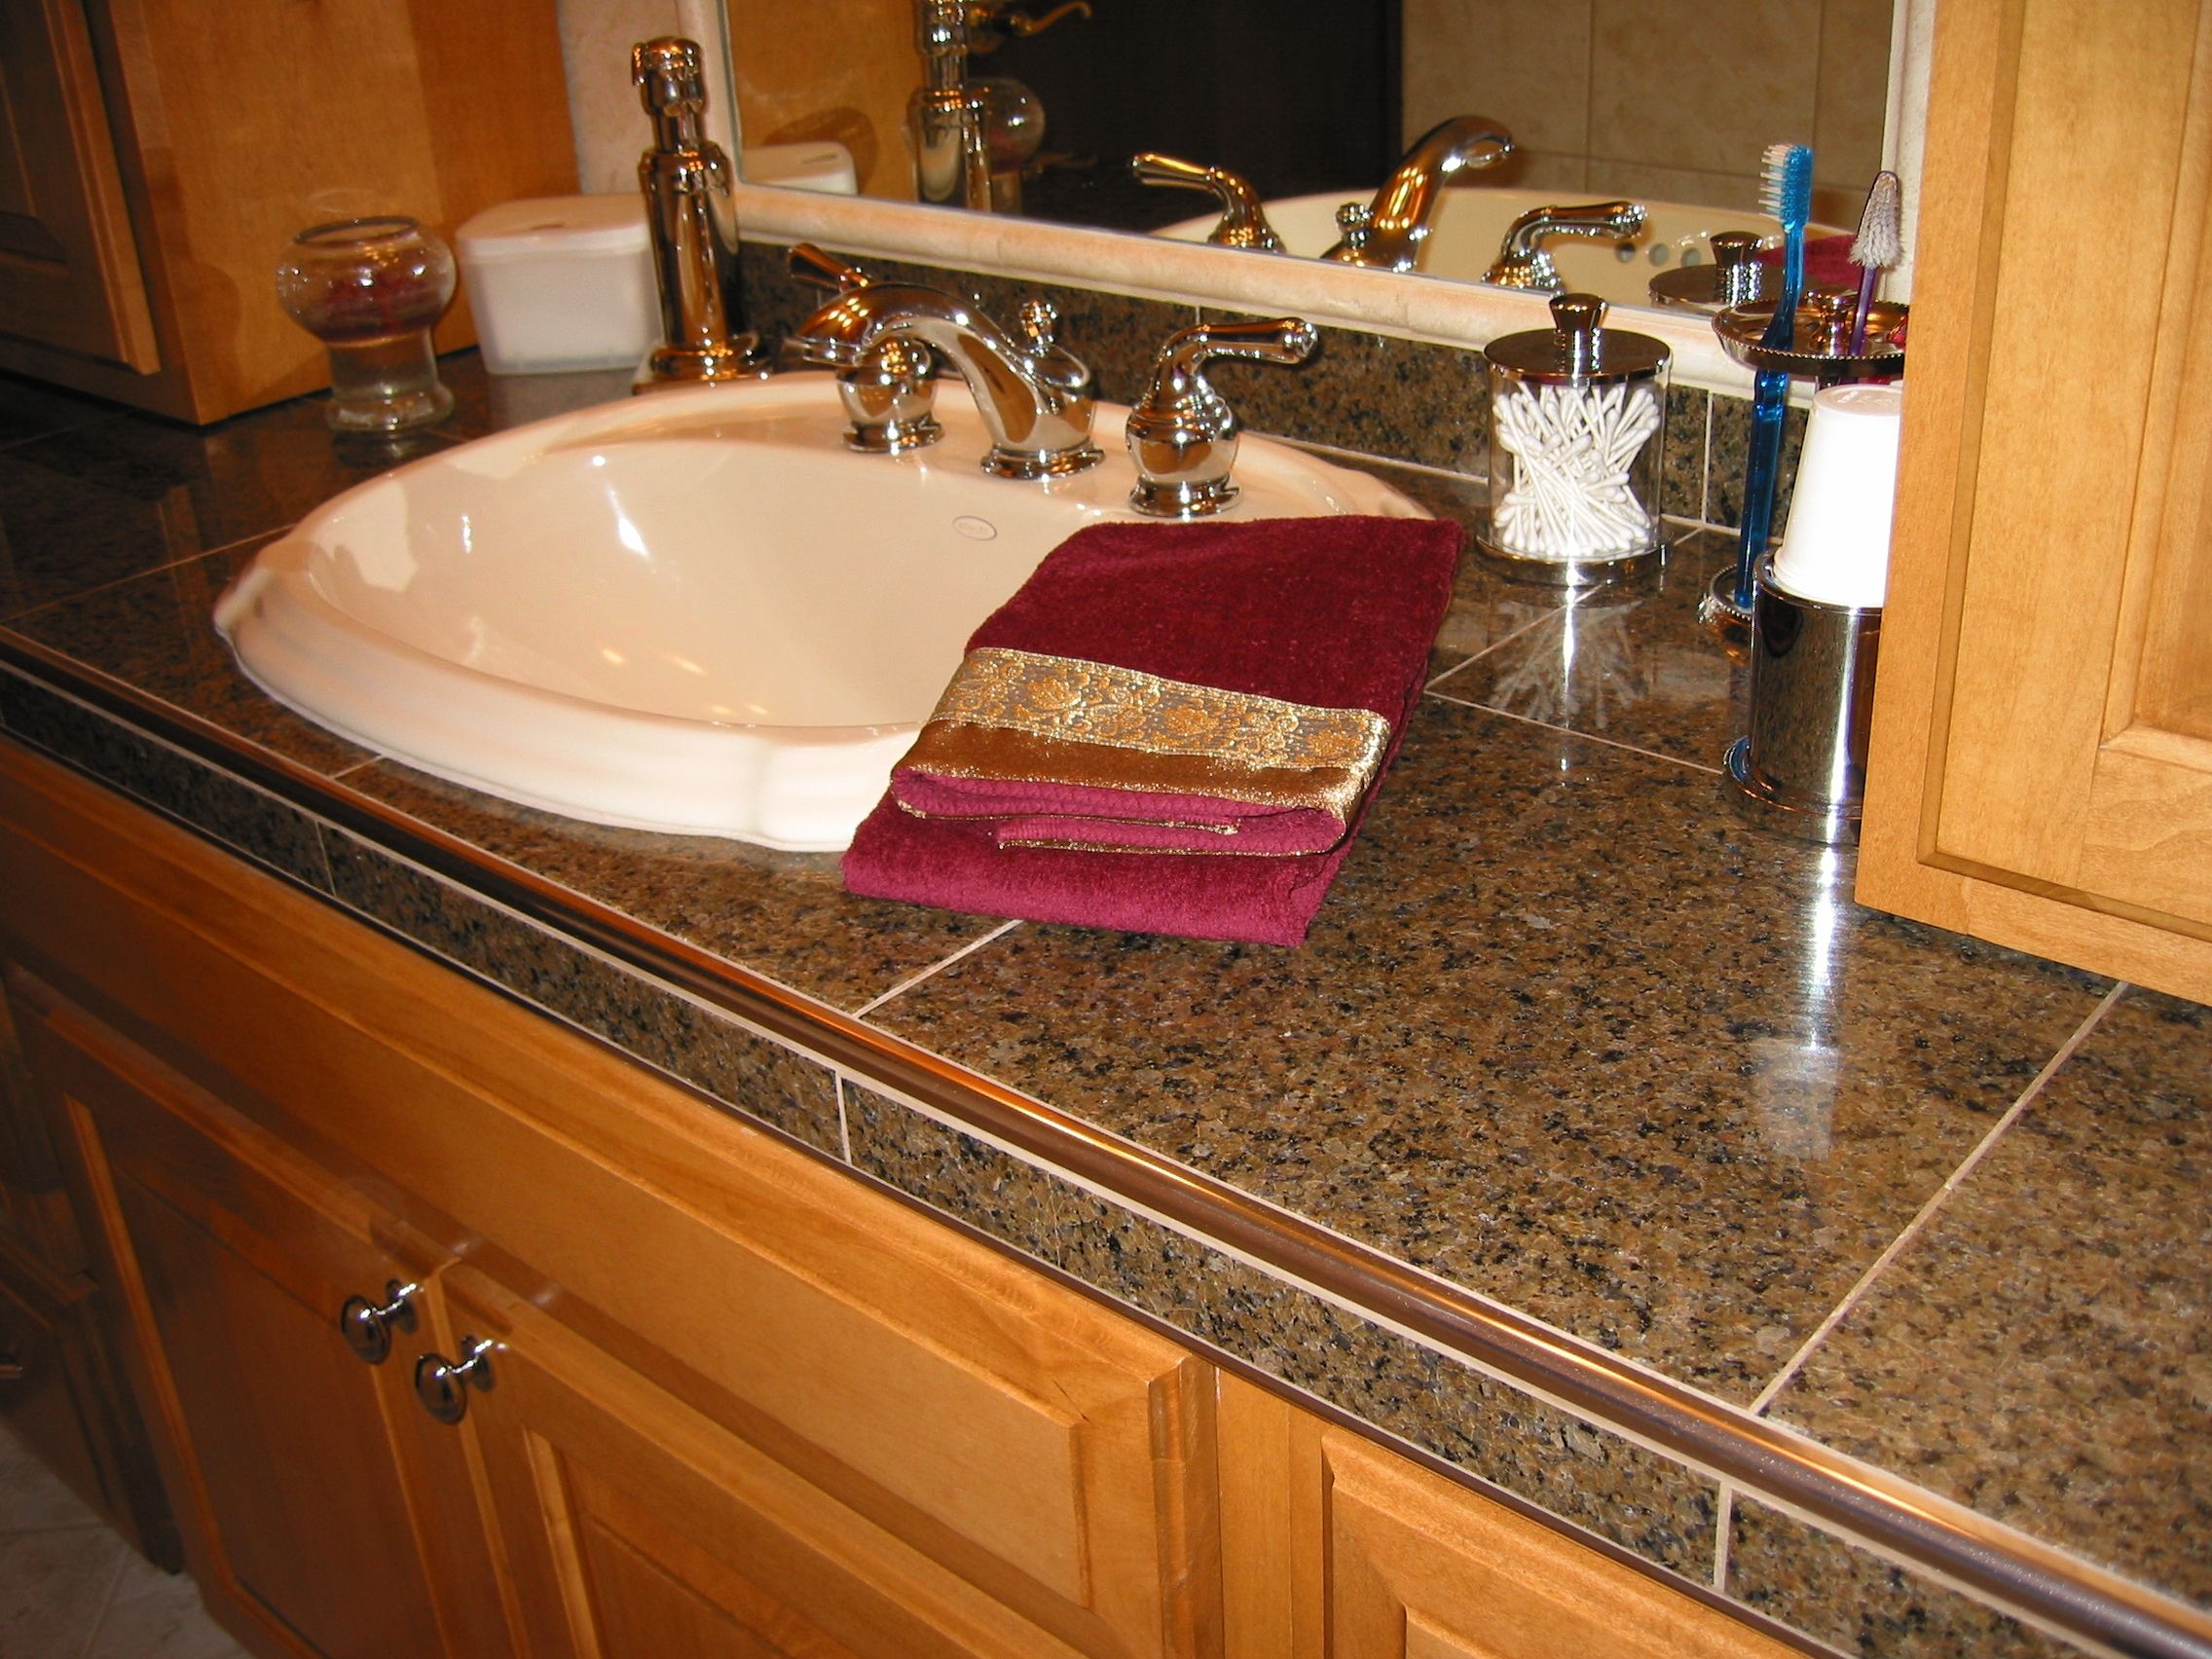 Tile Bathroom Countertop Ideas Inspiration Schluter Edge For Tile Countertopsthis Jury Is Still Out Decorating Design